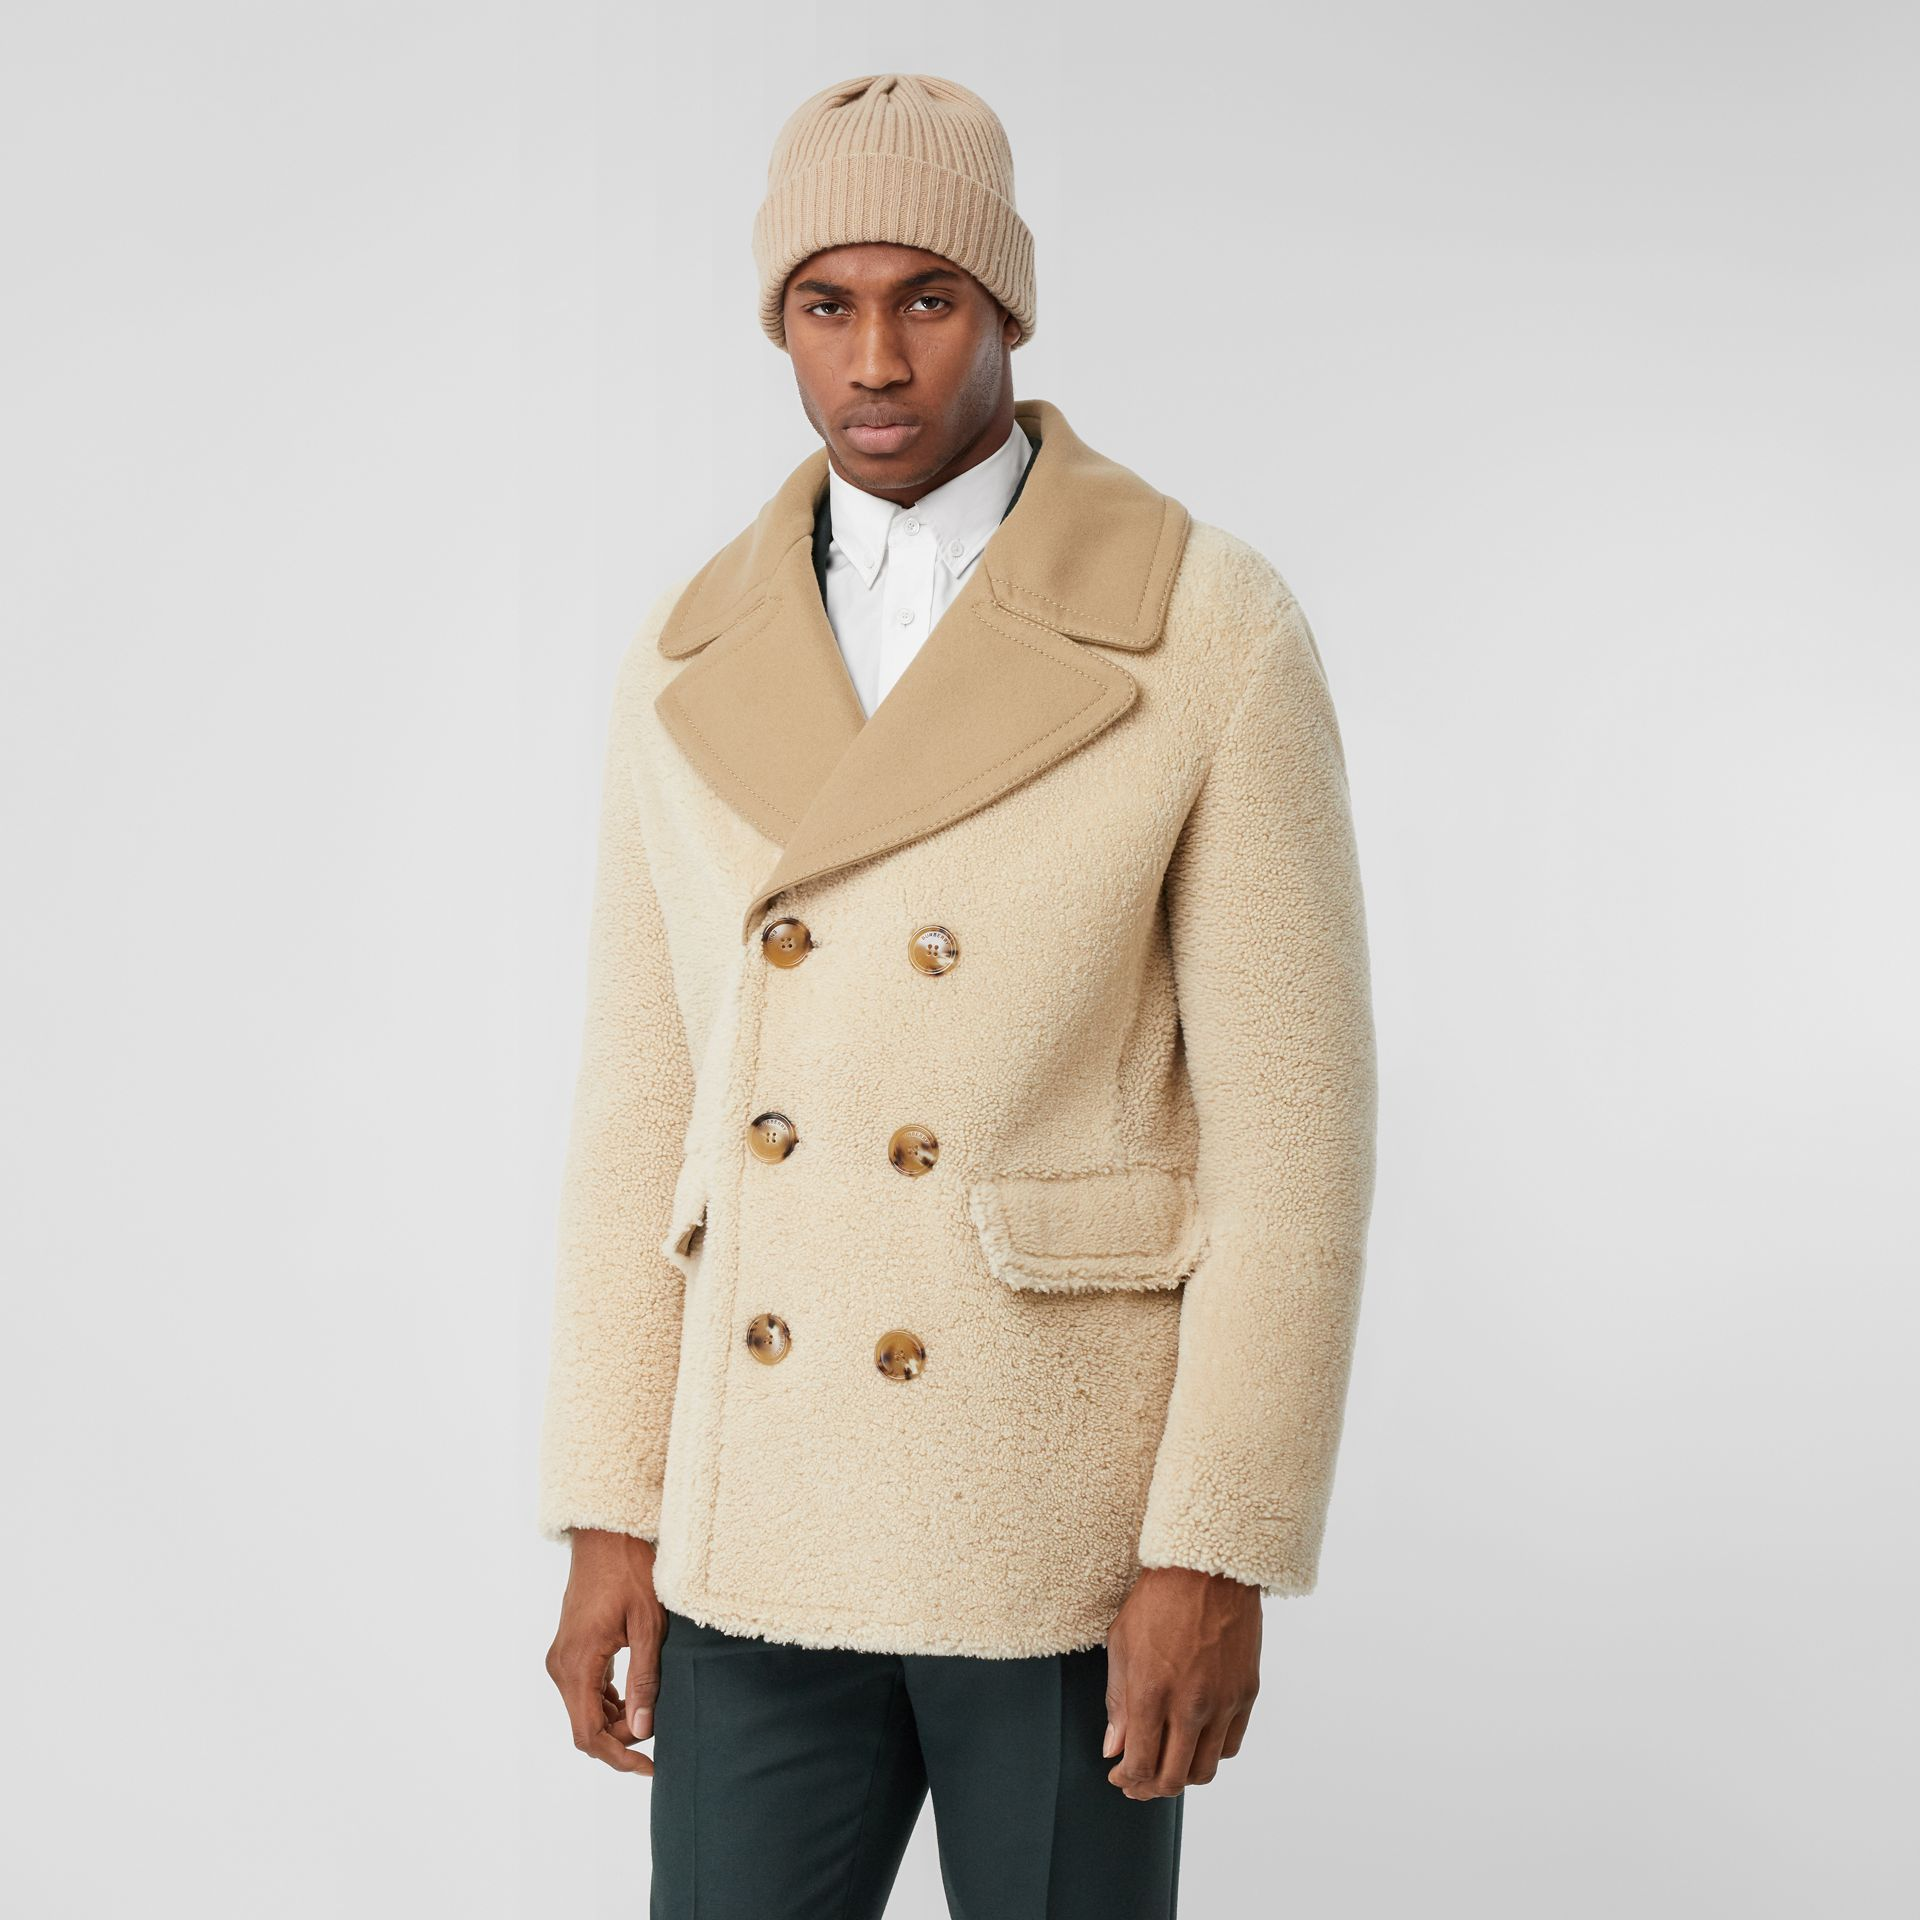 Contrast Wool Collar Shearling Pea Coat in Sesame - Men | Burberry - gallery image 5